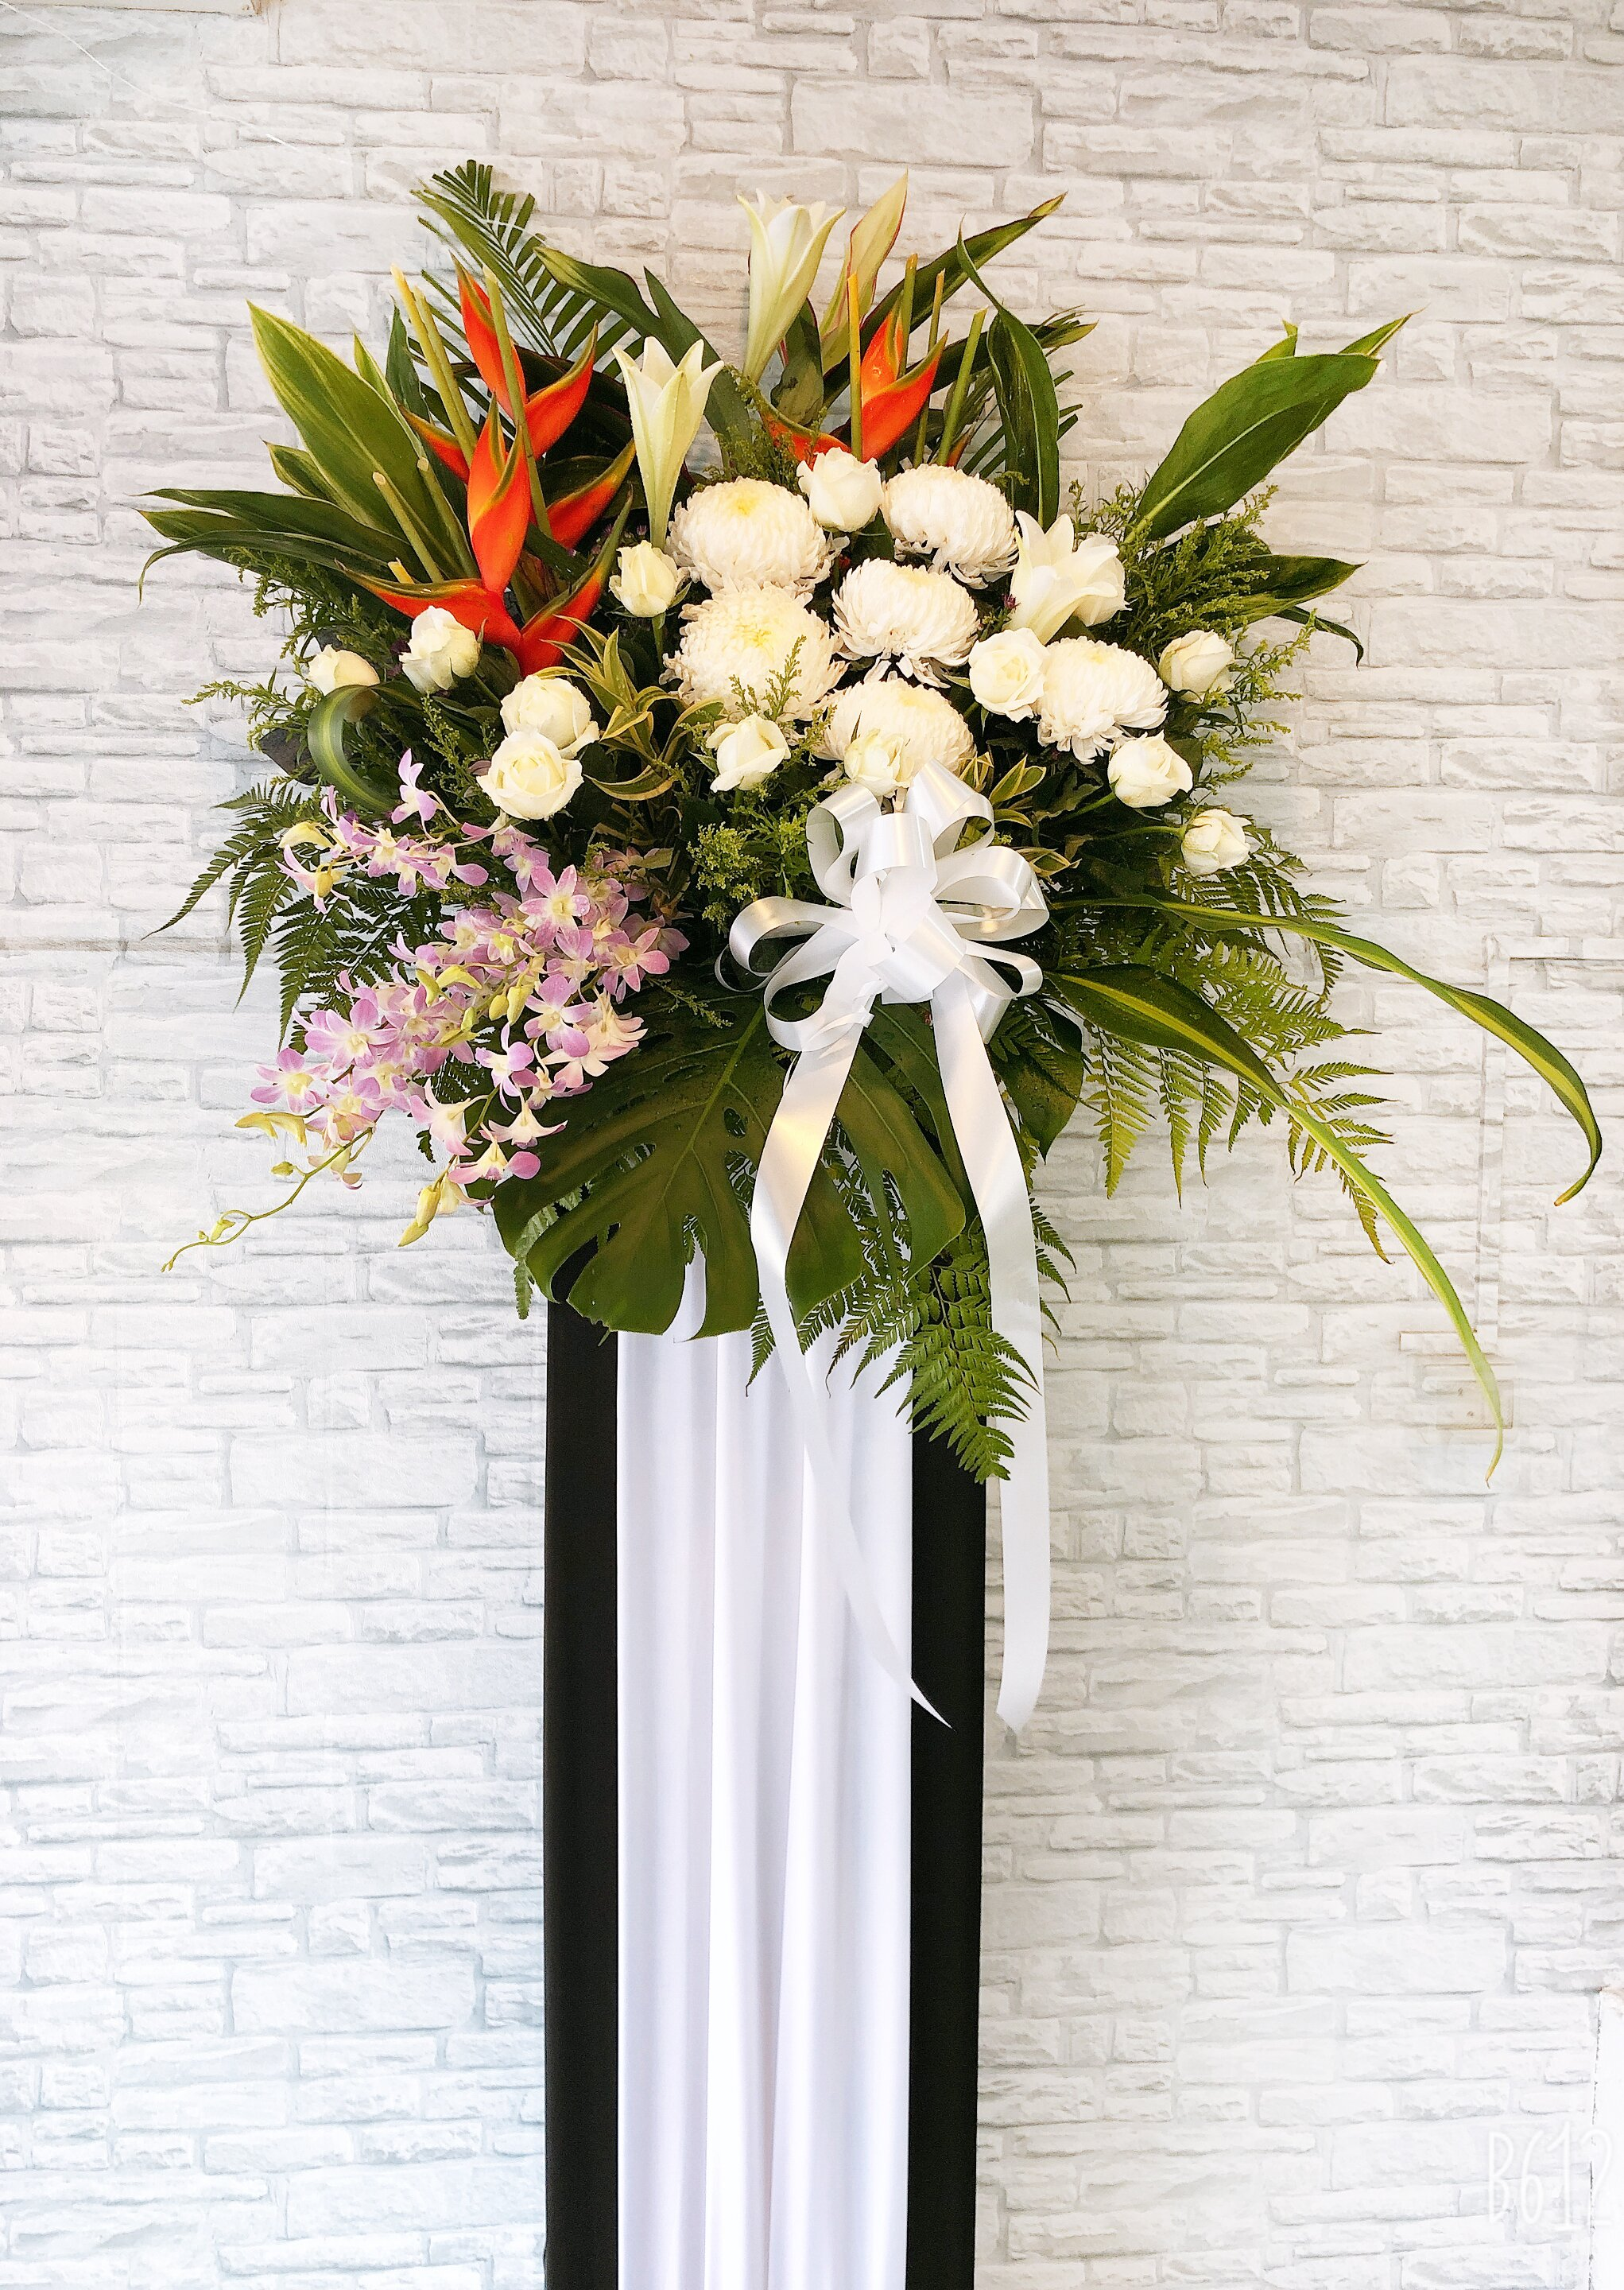 Wish You Peace - Freeland Floral 自由花苑